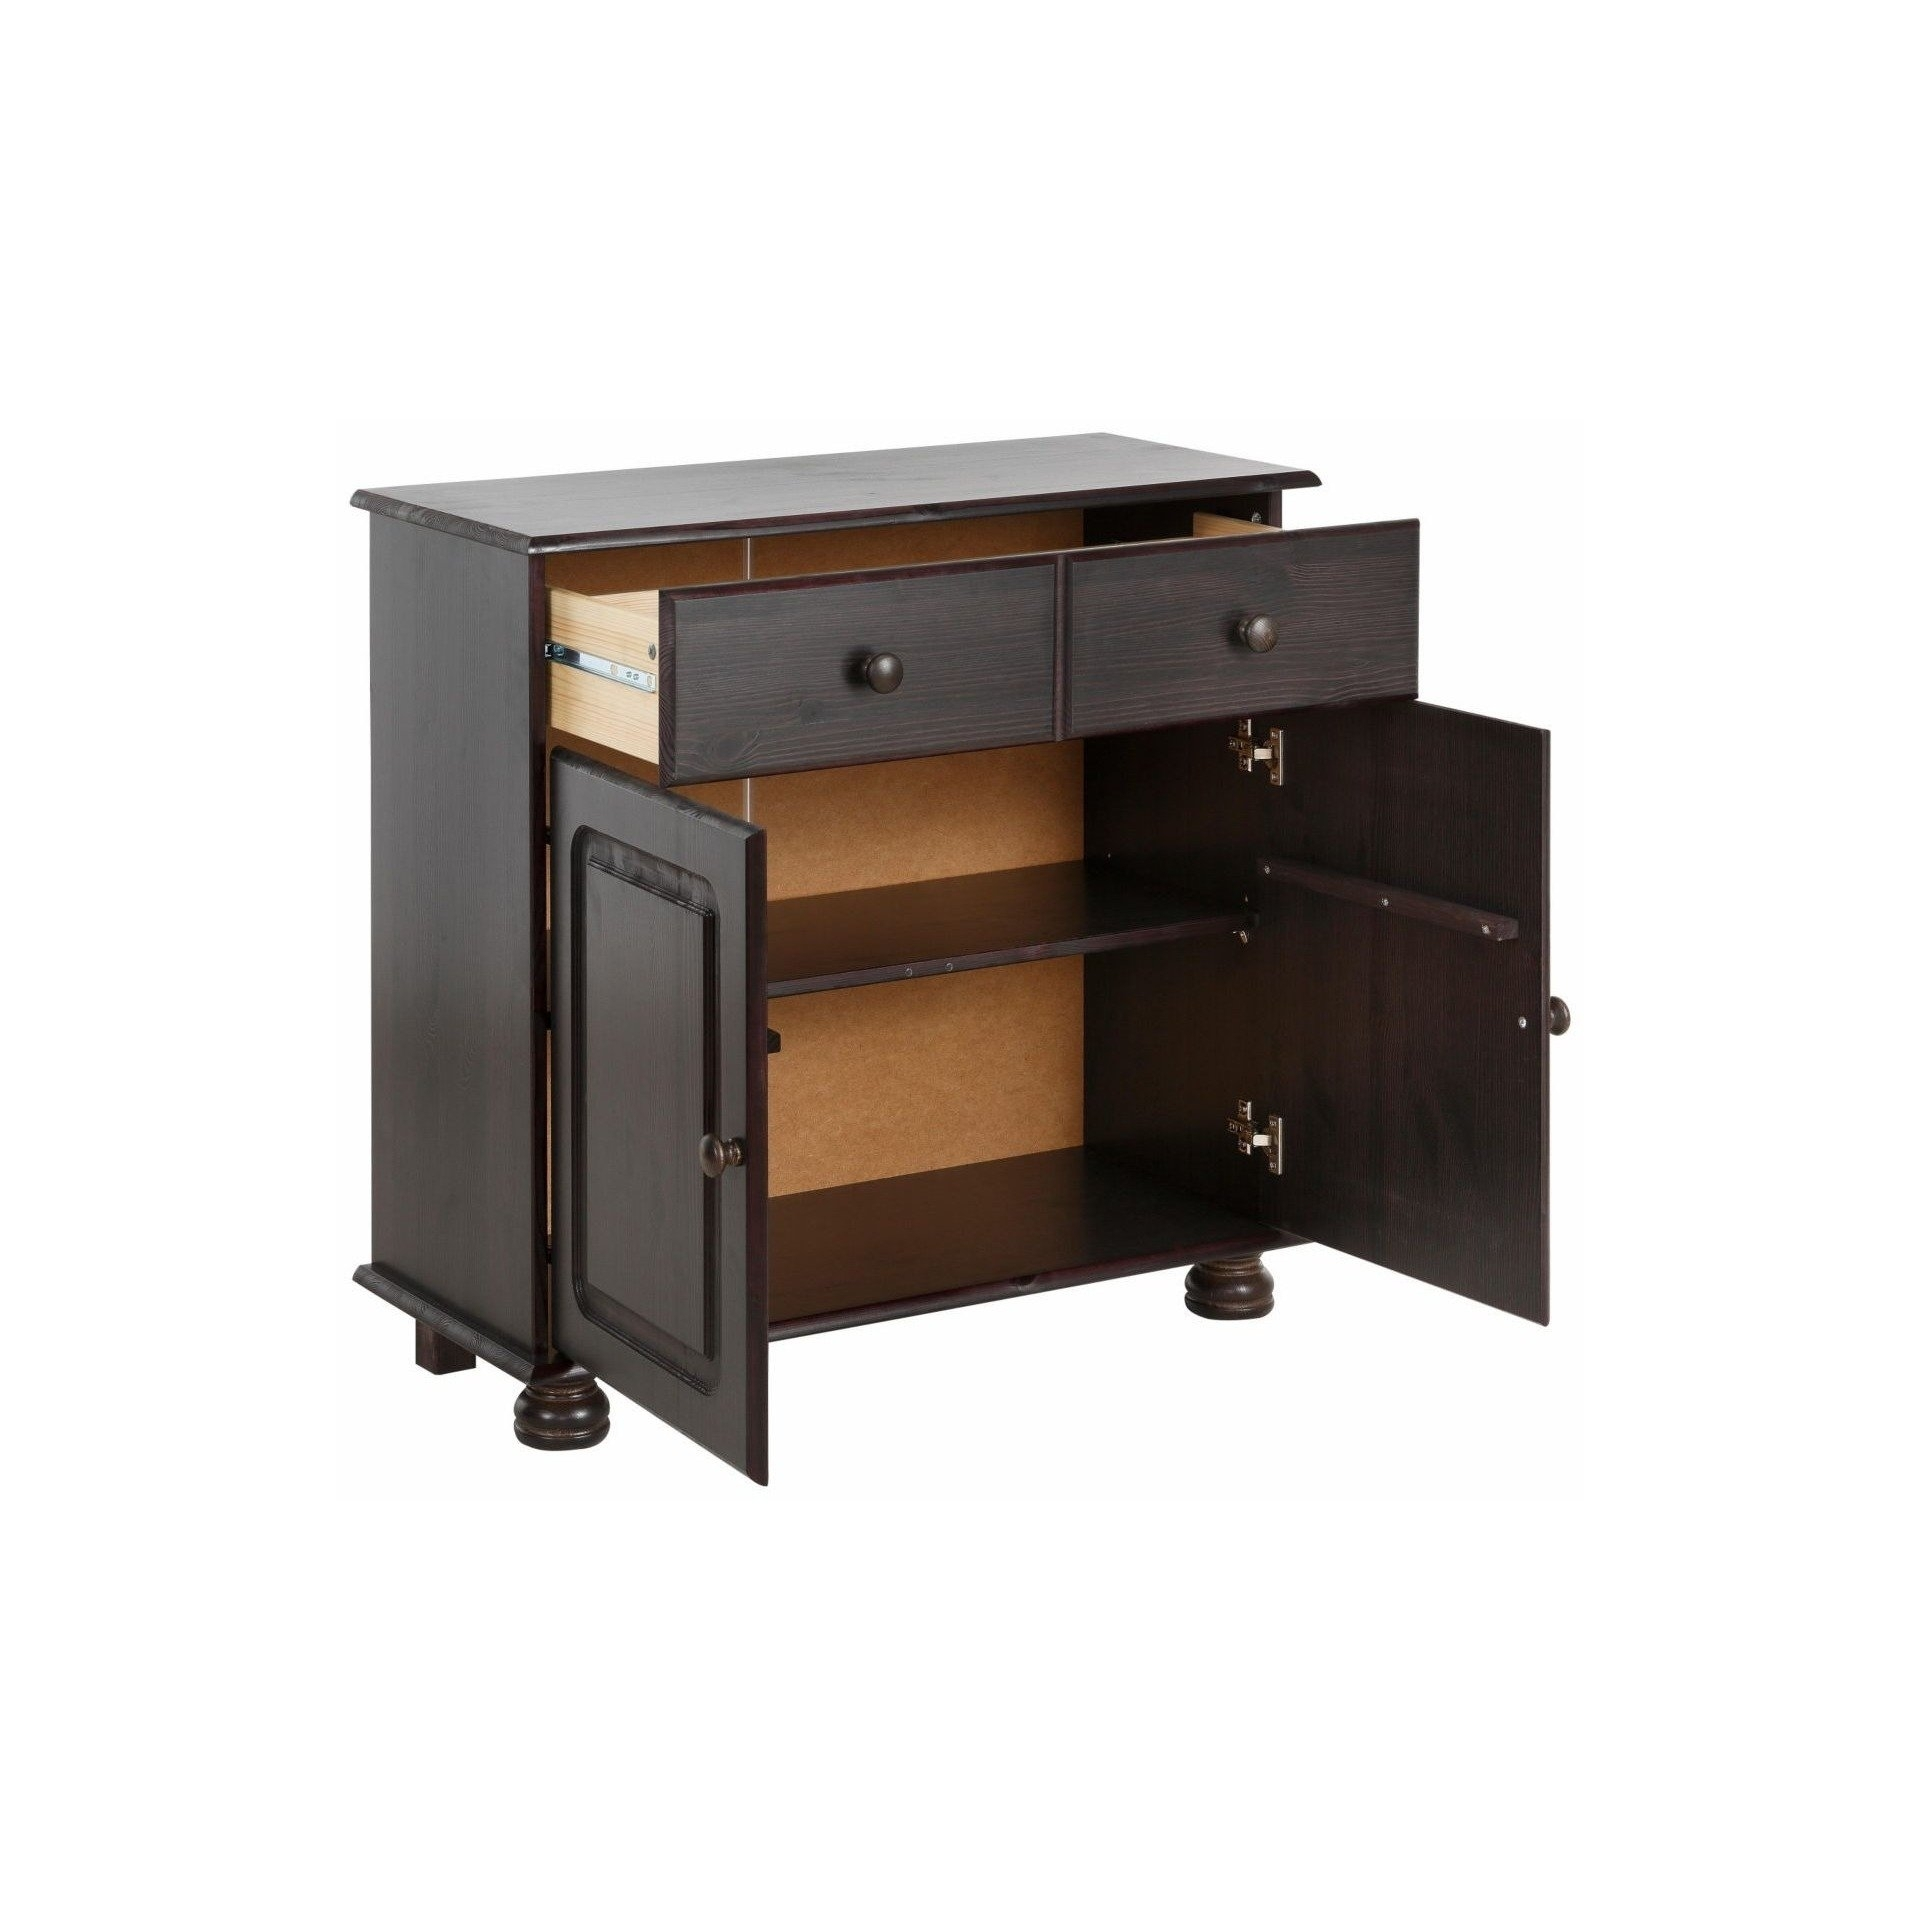 Shop Mette Solid Pine 2 Door, 1 Drawer Sideboard – Free Shipping Intended For Latest Burn Tan Finish 2 Door Sideboards (#16 of 20)